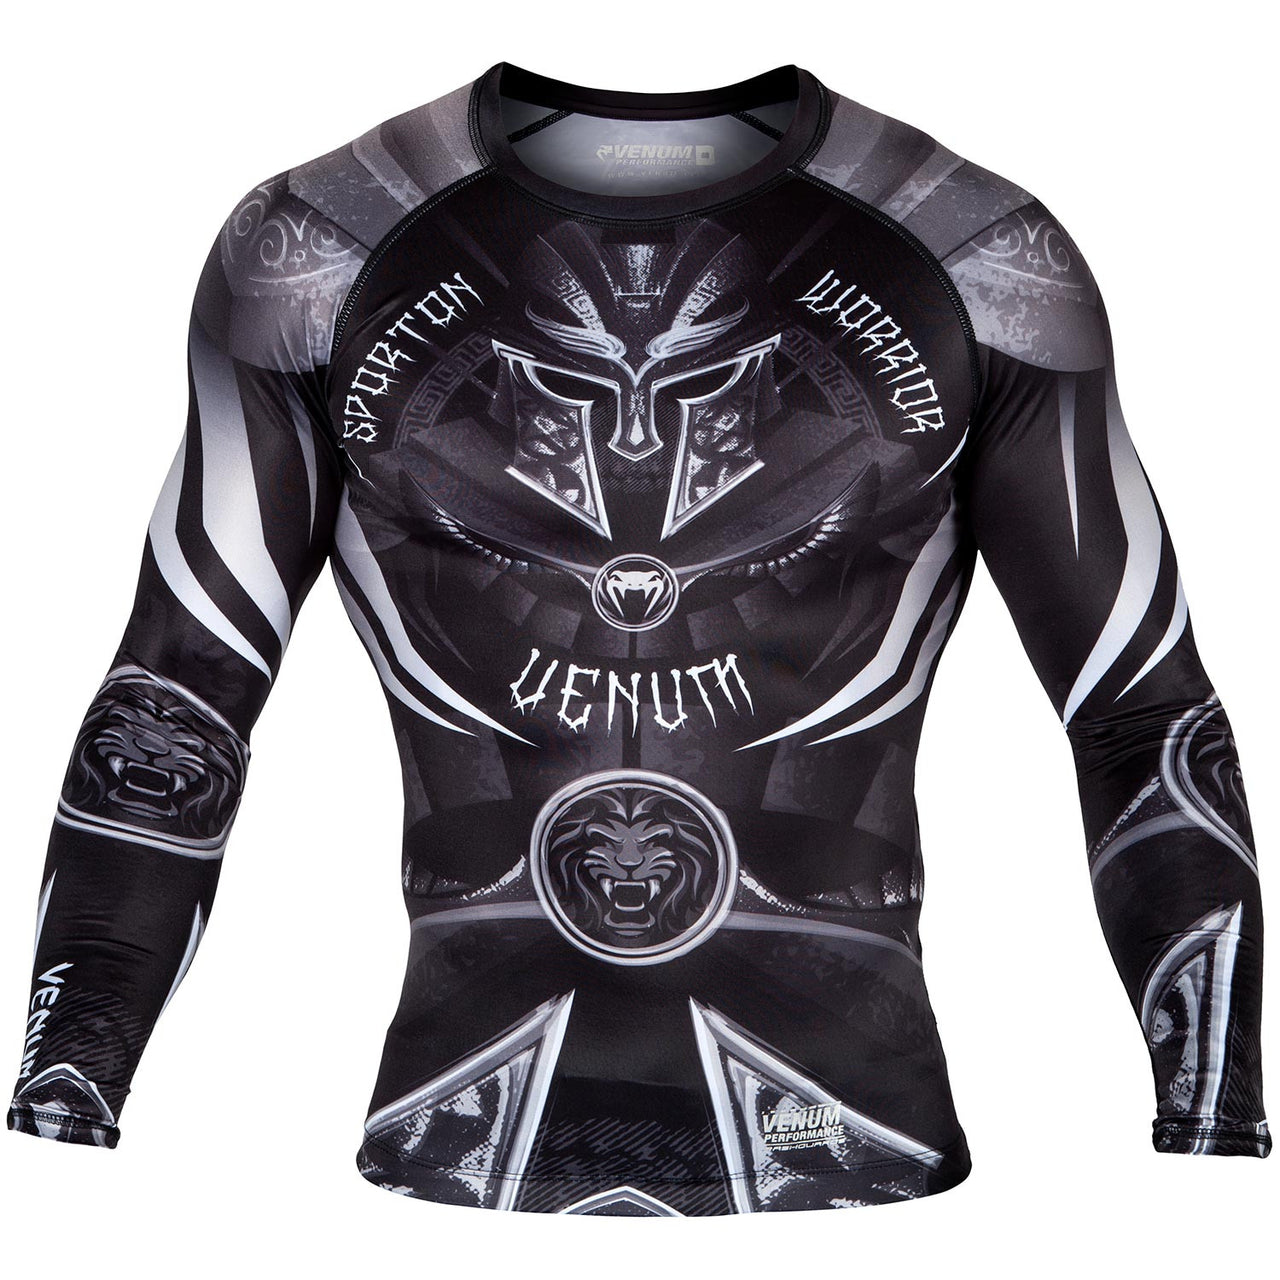 Venum Gladiator 3.0 Rashguard - Long Sleeves - Black/White